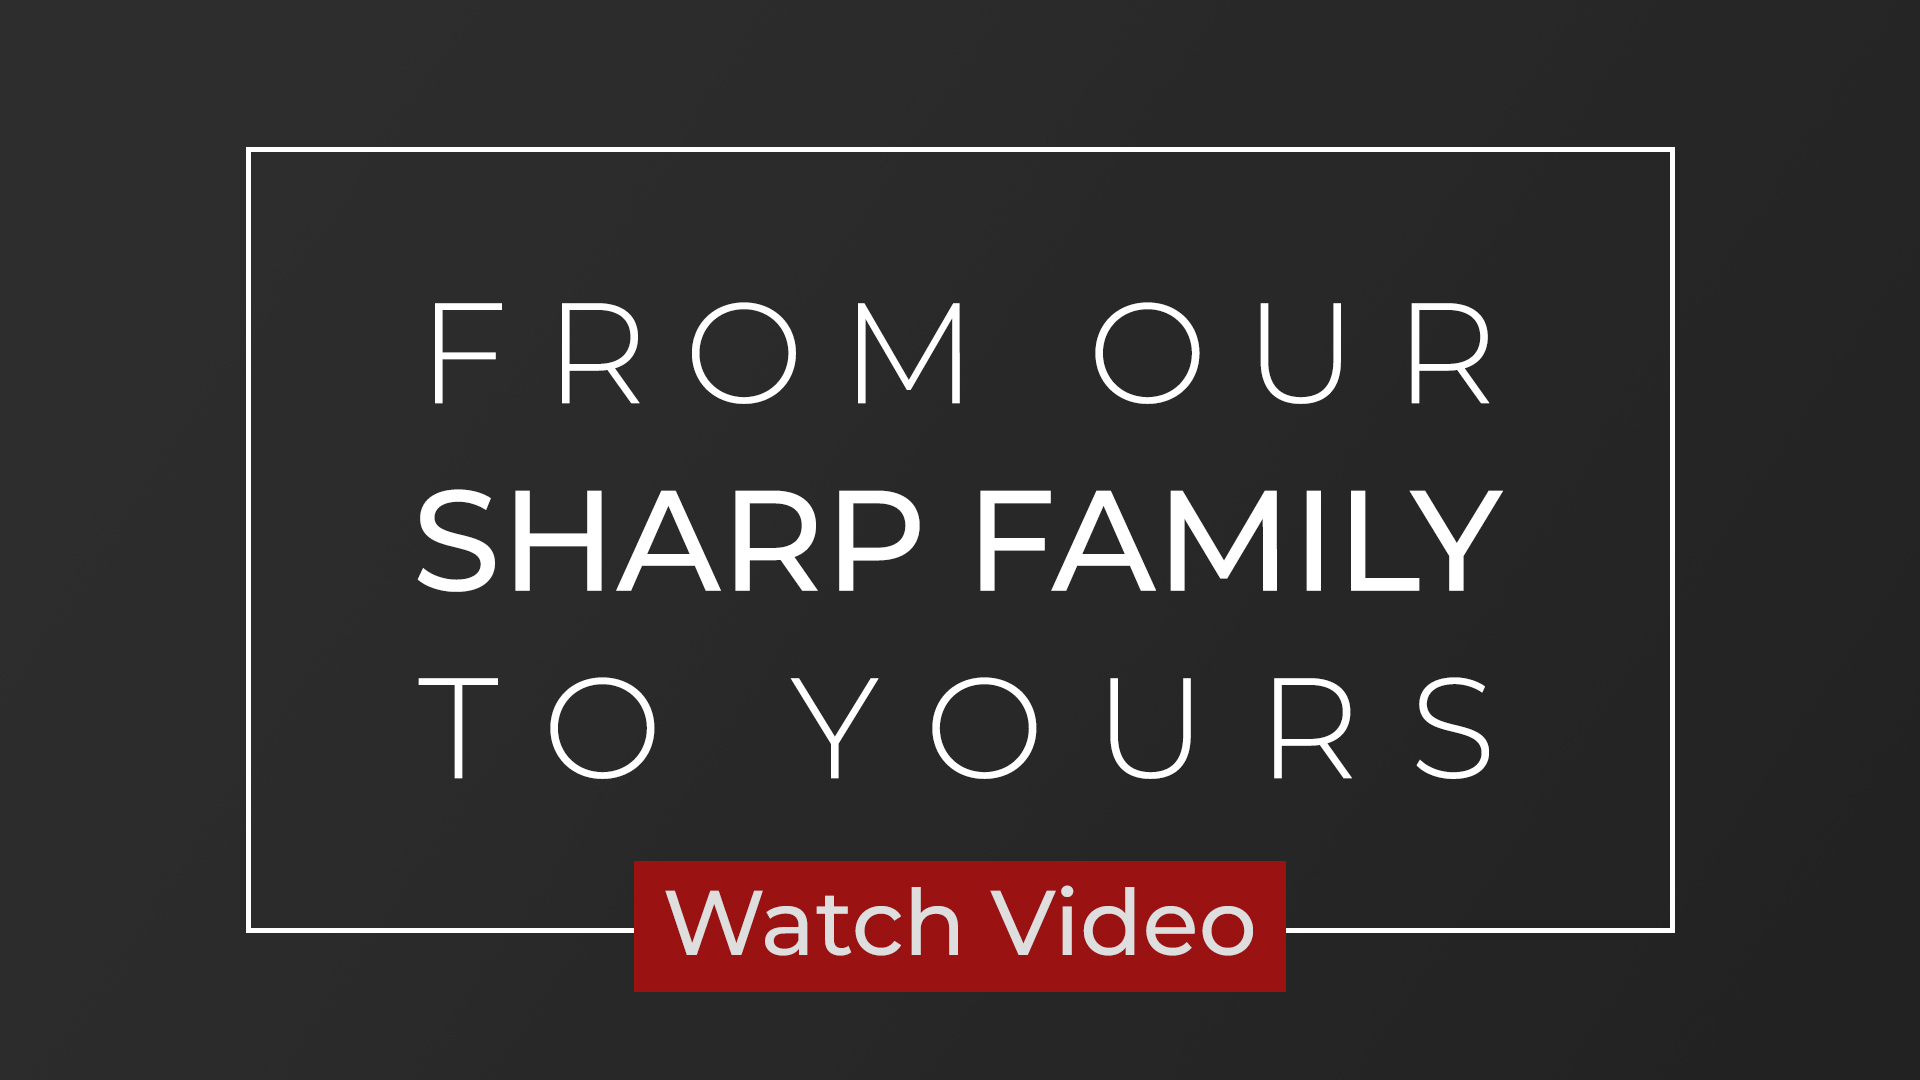 From Our Sharp Family to Yours! Watch Video